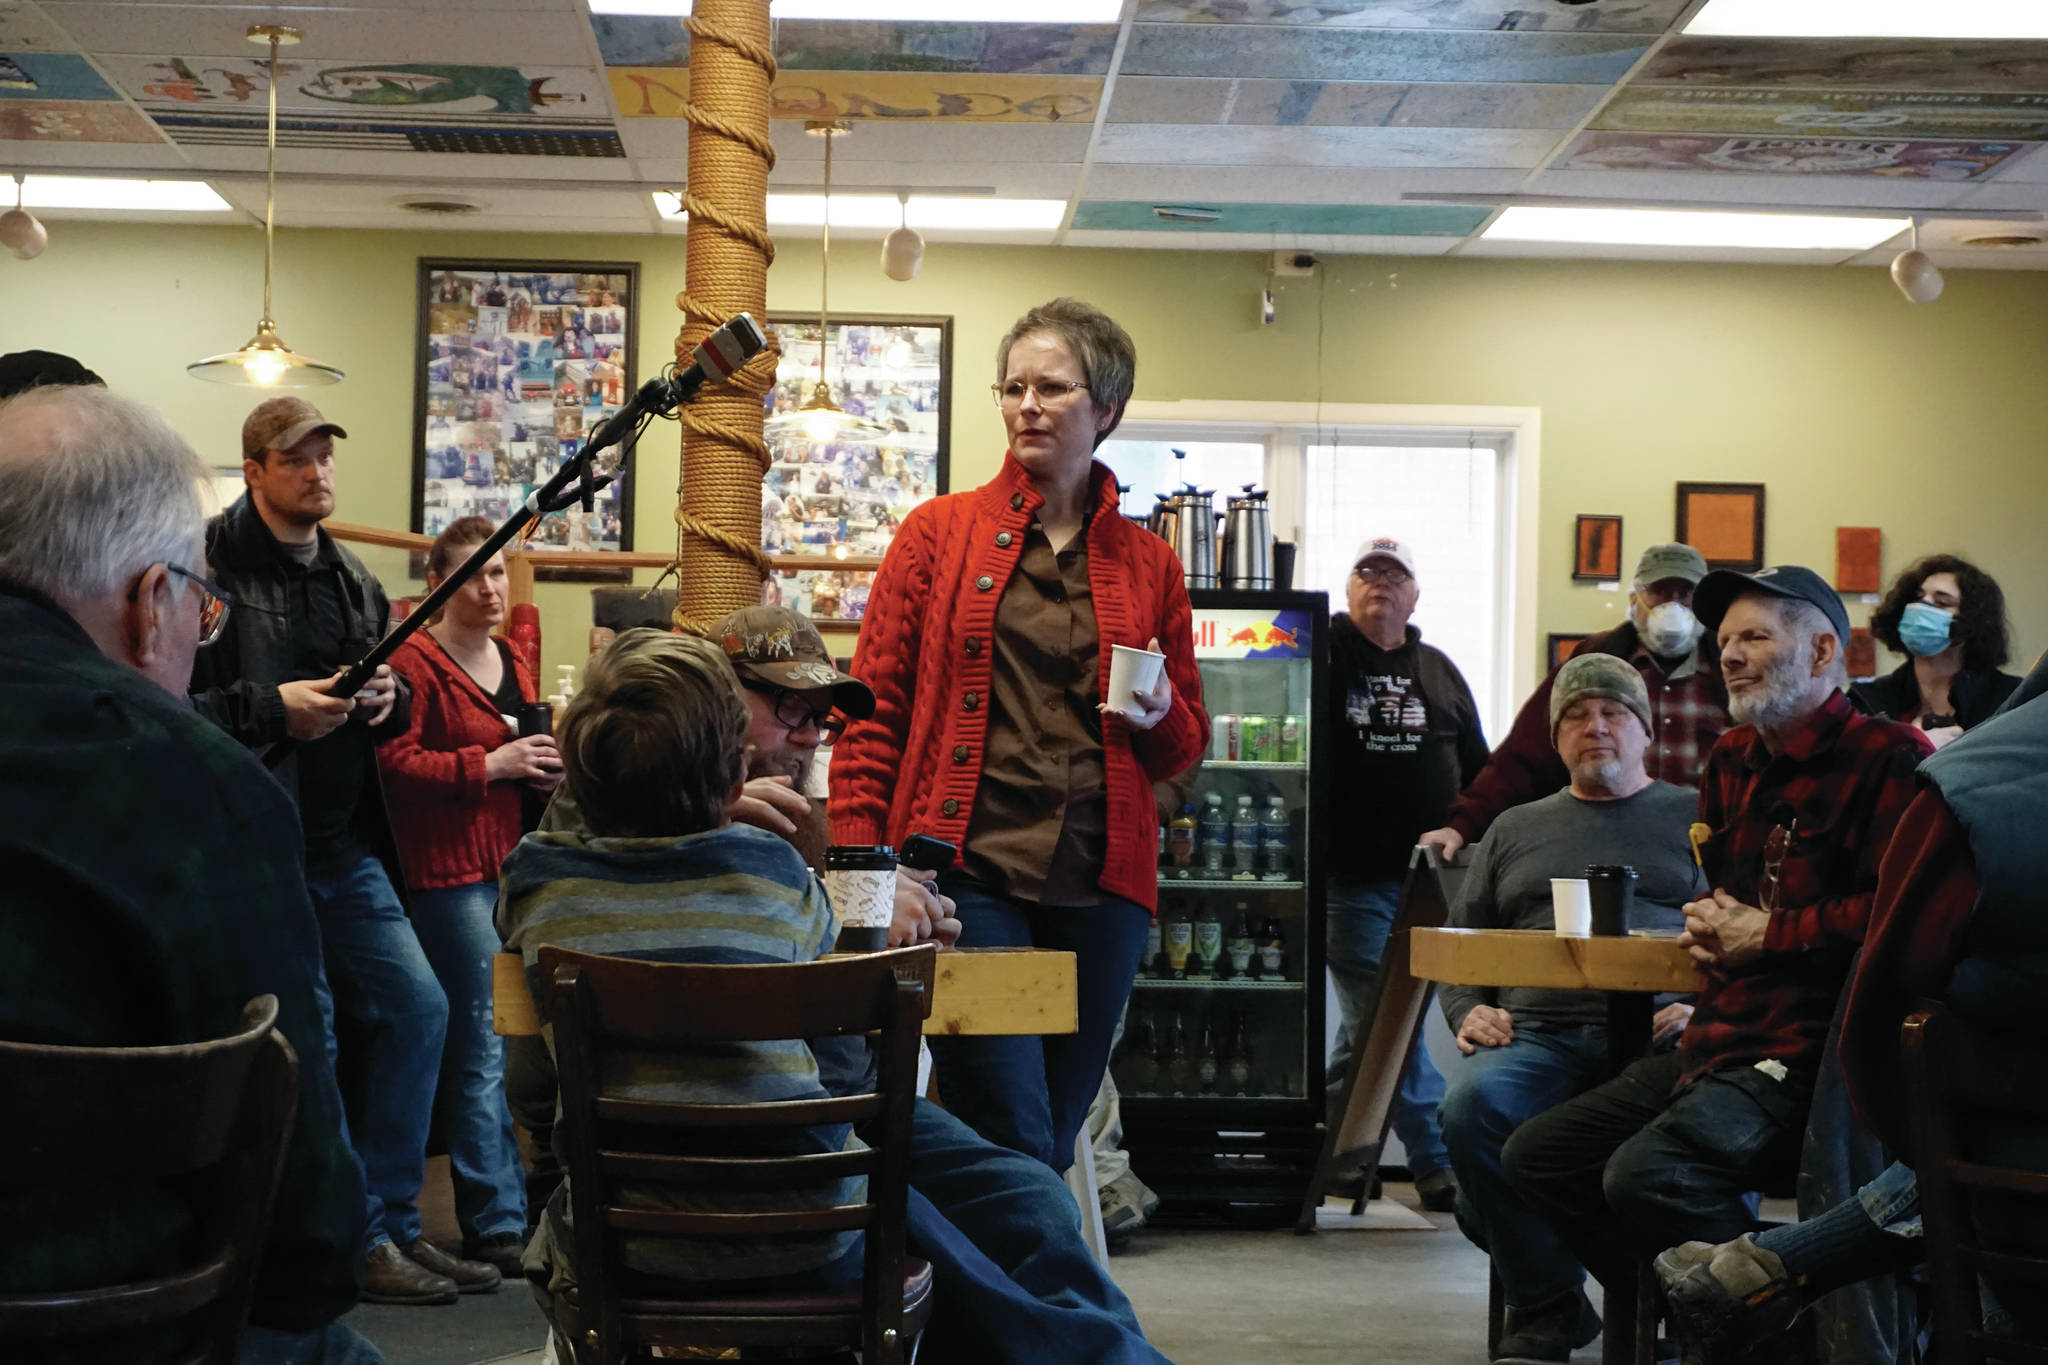 Rep. Sarah Vance, R-Homer, speaks at a town hall meeting on Monday, March 29, 2021, at Captain's Coffee in Homer, Alaska. (Photo by Michael Armstrong/Homer News)